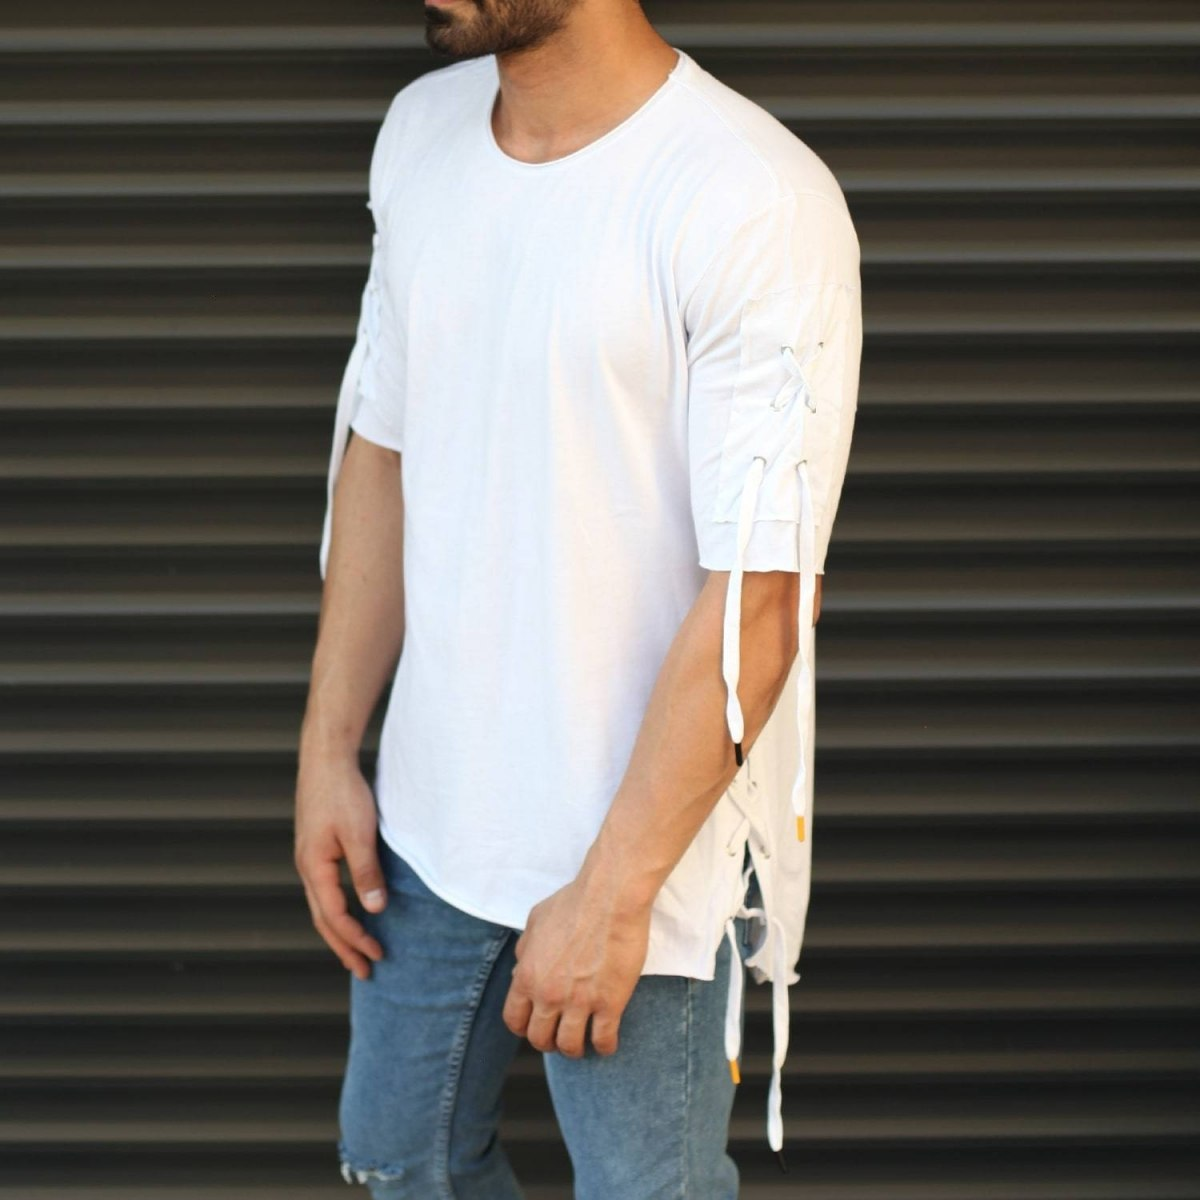 Men's Sleeves Drawstring Longline T-Shirt White Mv Premium Brand - 1